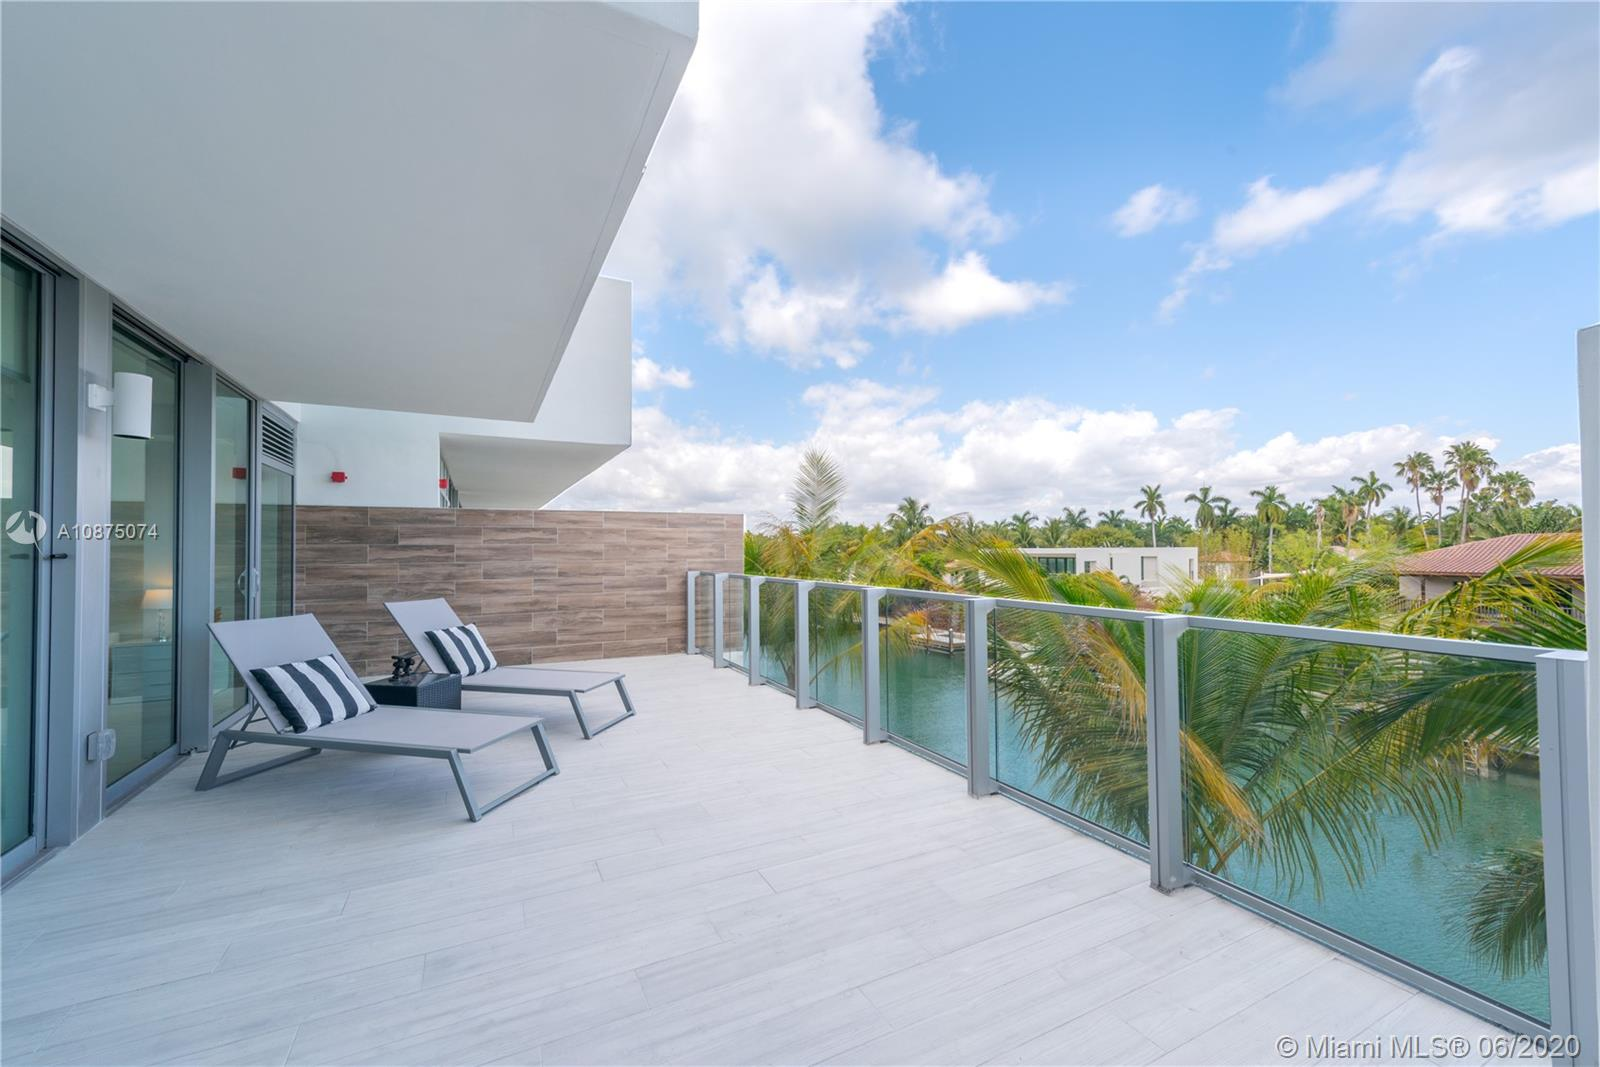 1201  20th St #402 For Sale A10875074, FL